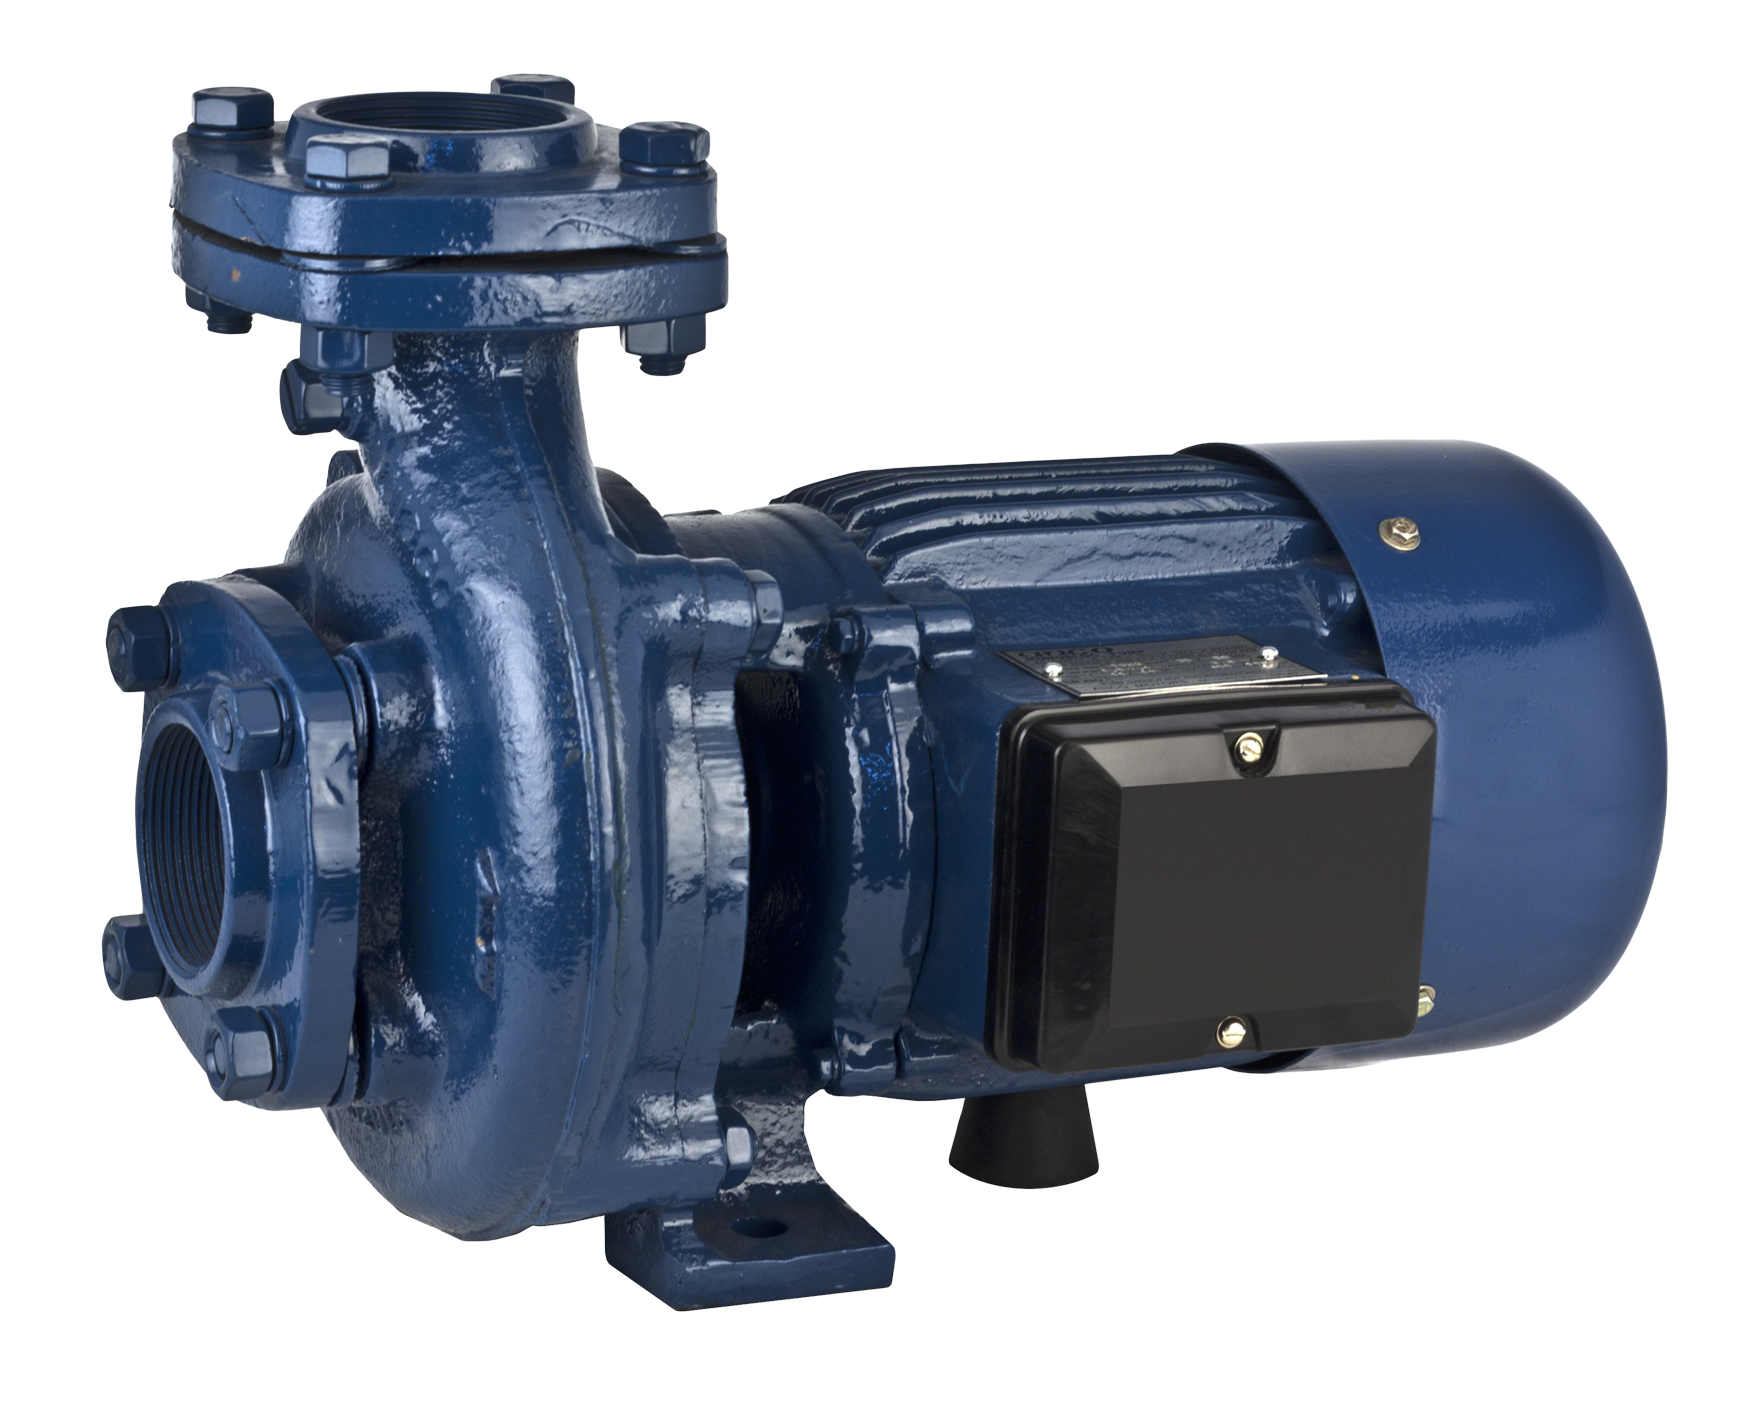 electric water pump blue motor png image purepng #20803